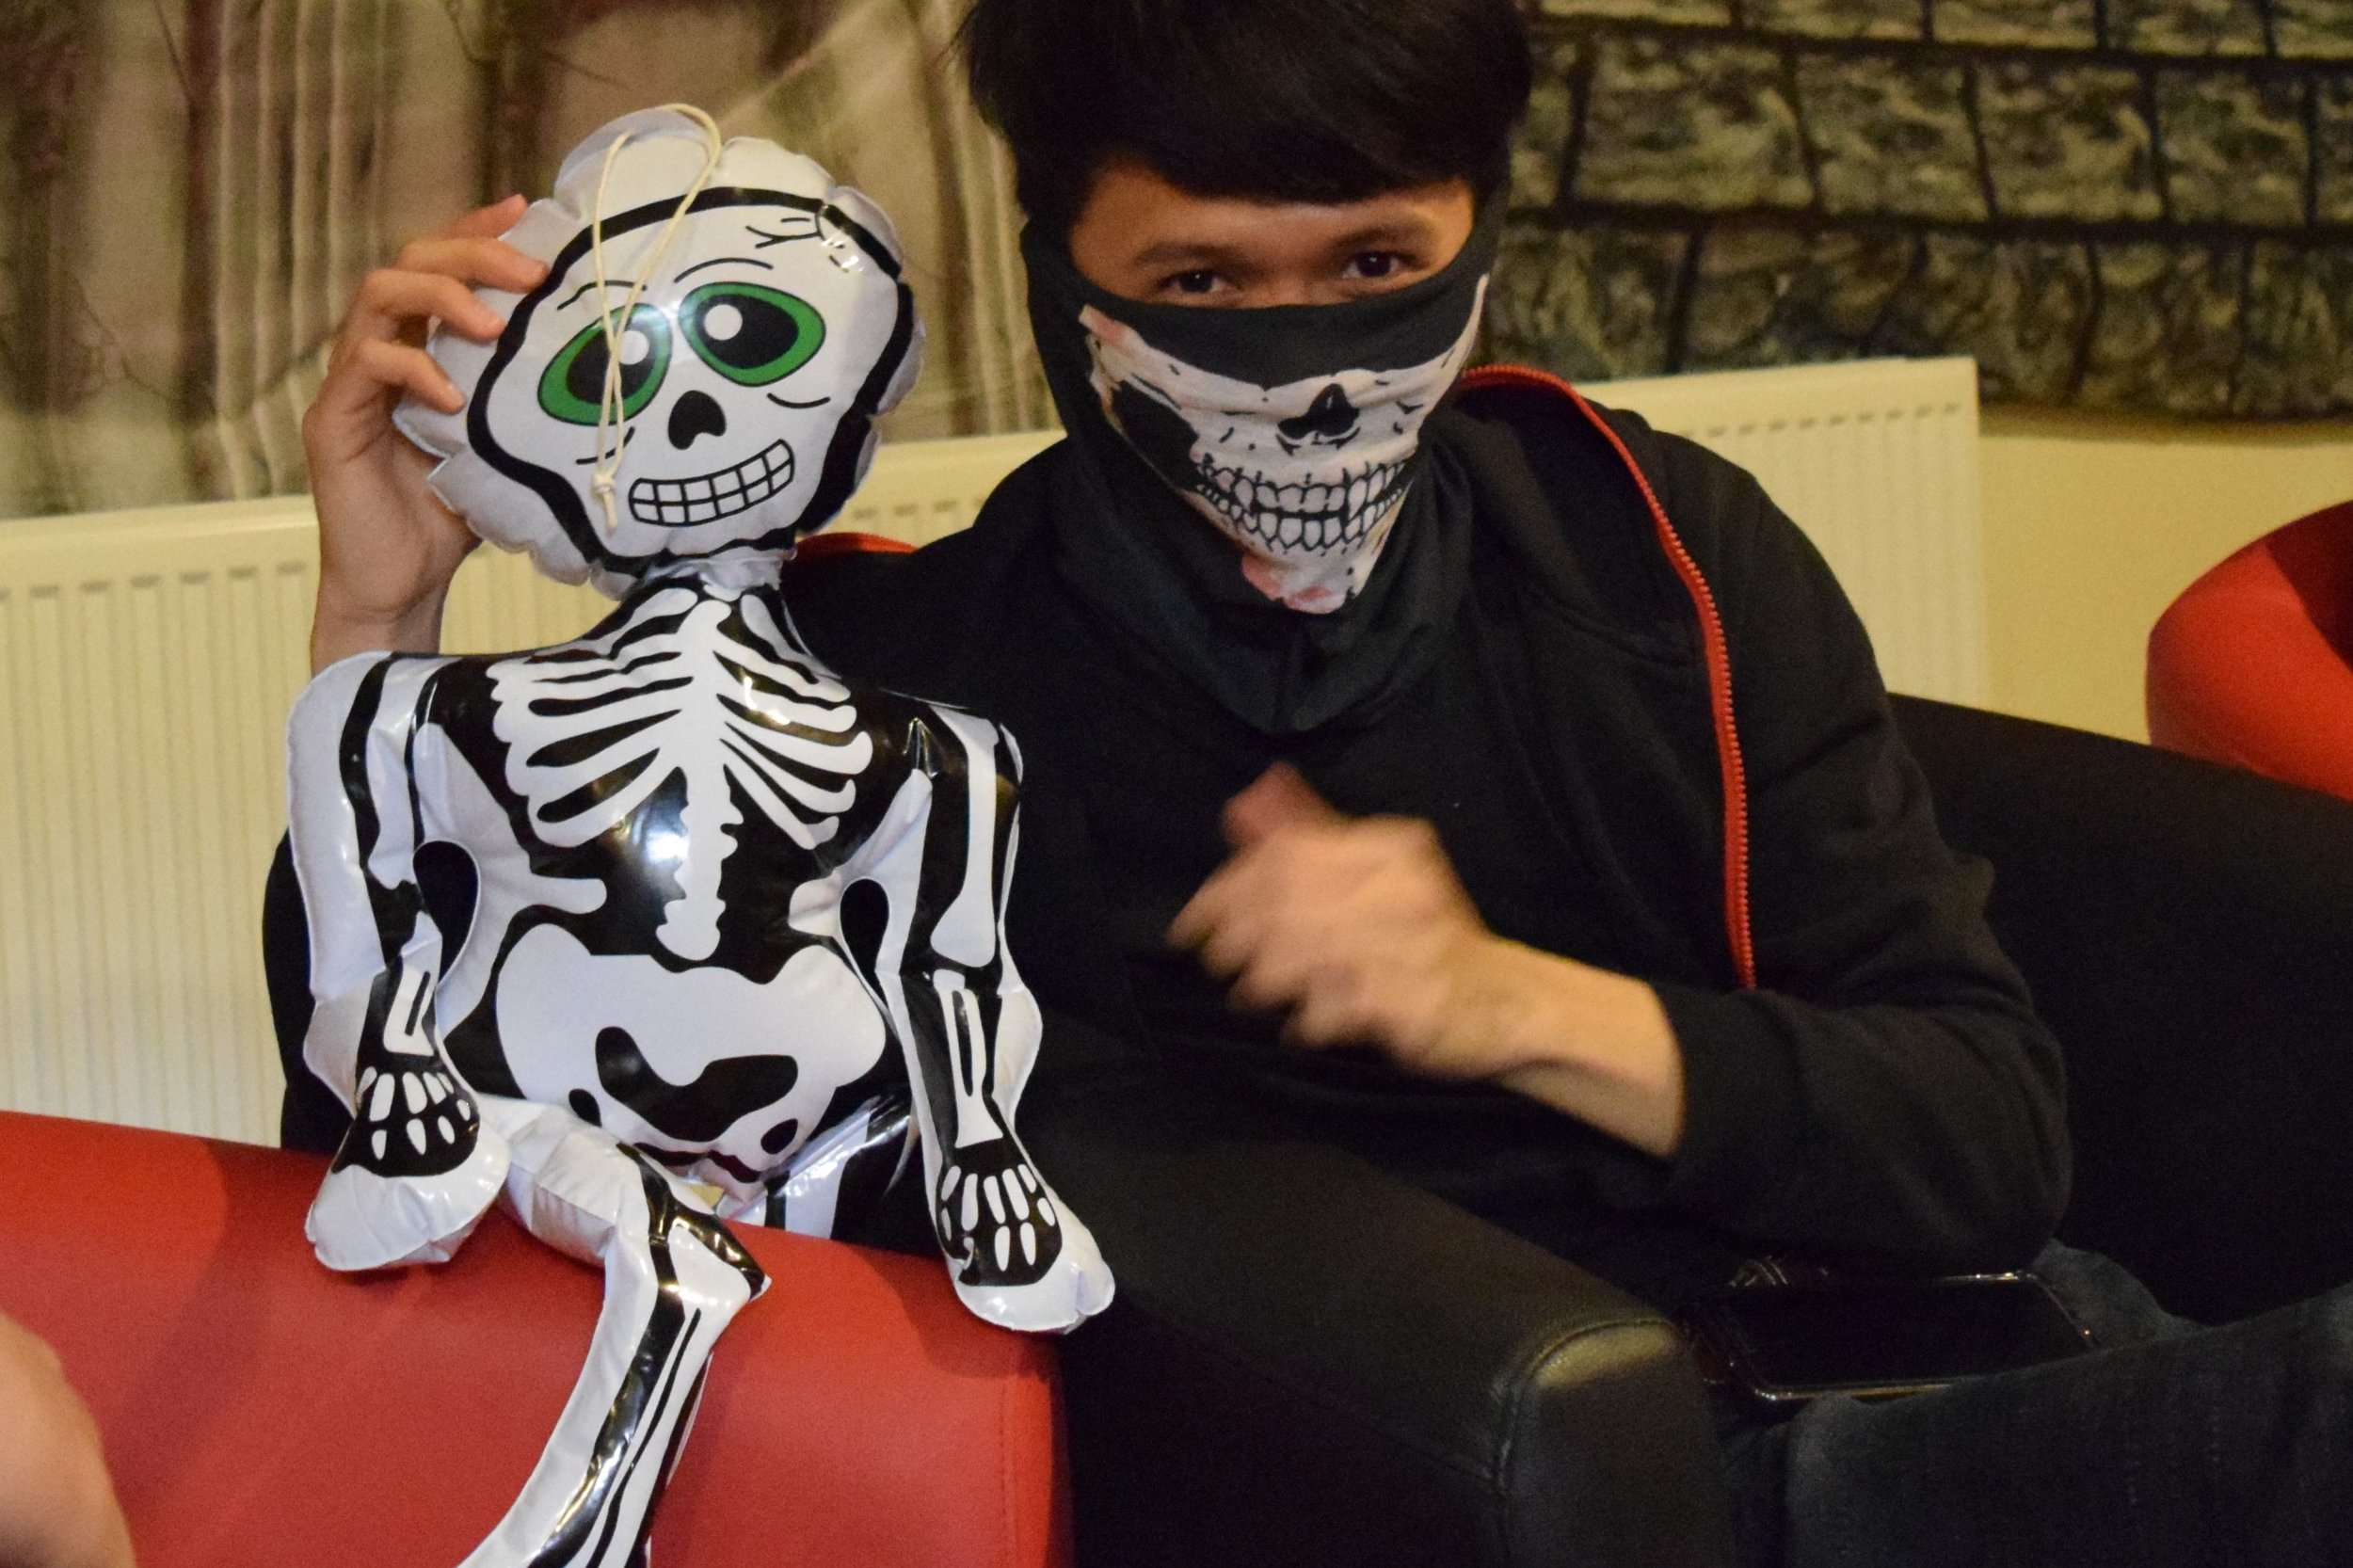 Andy and Skelly.jpg